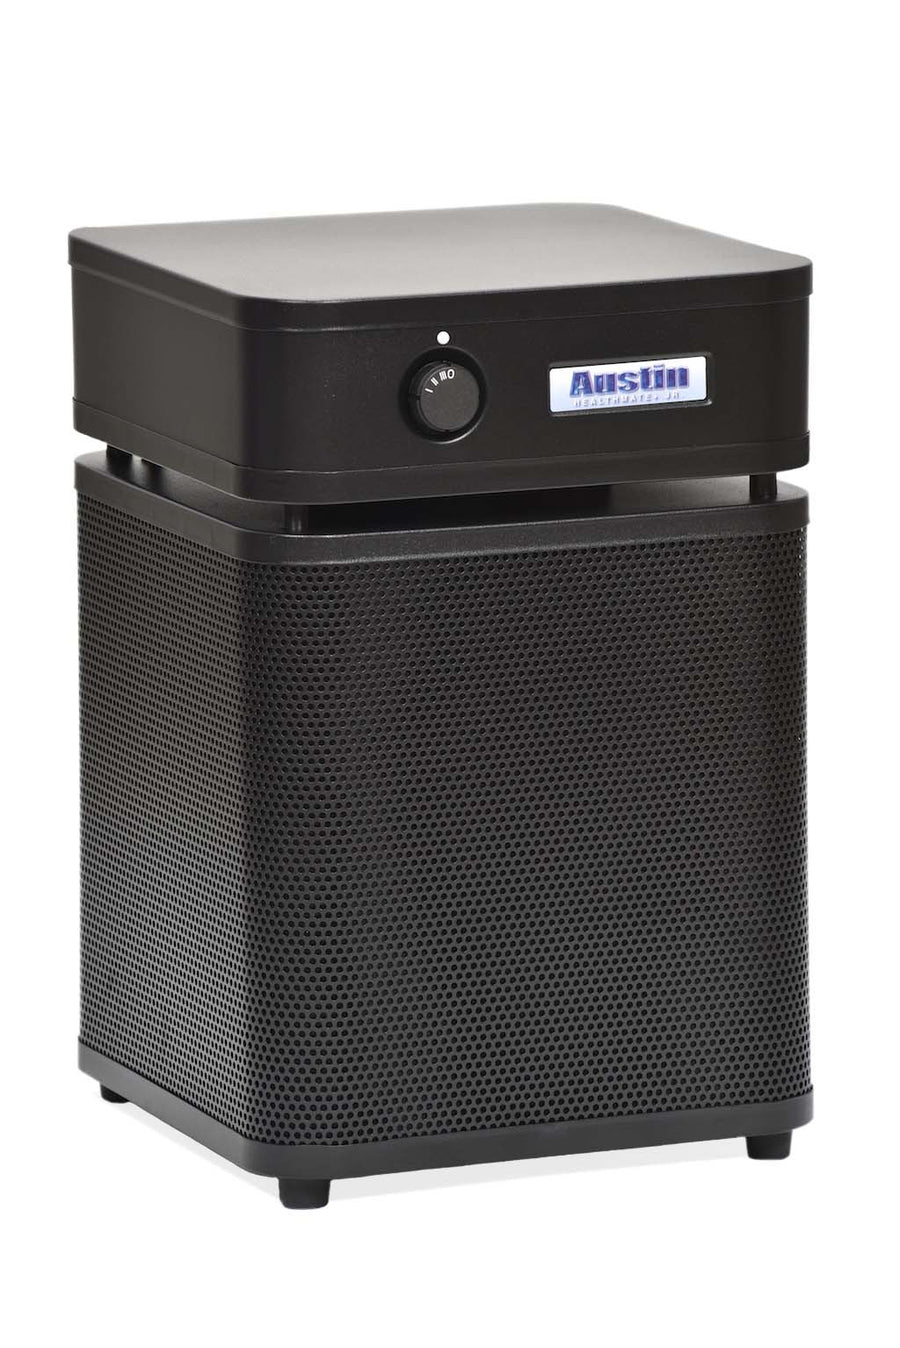 Clearance - HealthMate + Plus HM250 Junior Air Purifier RM1